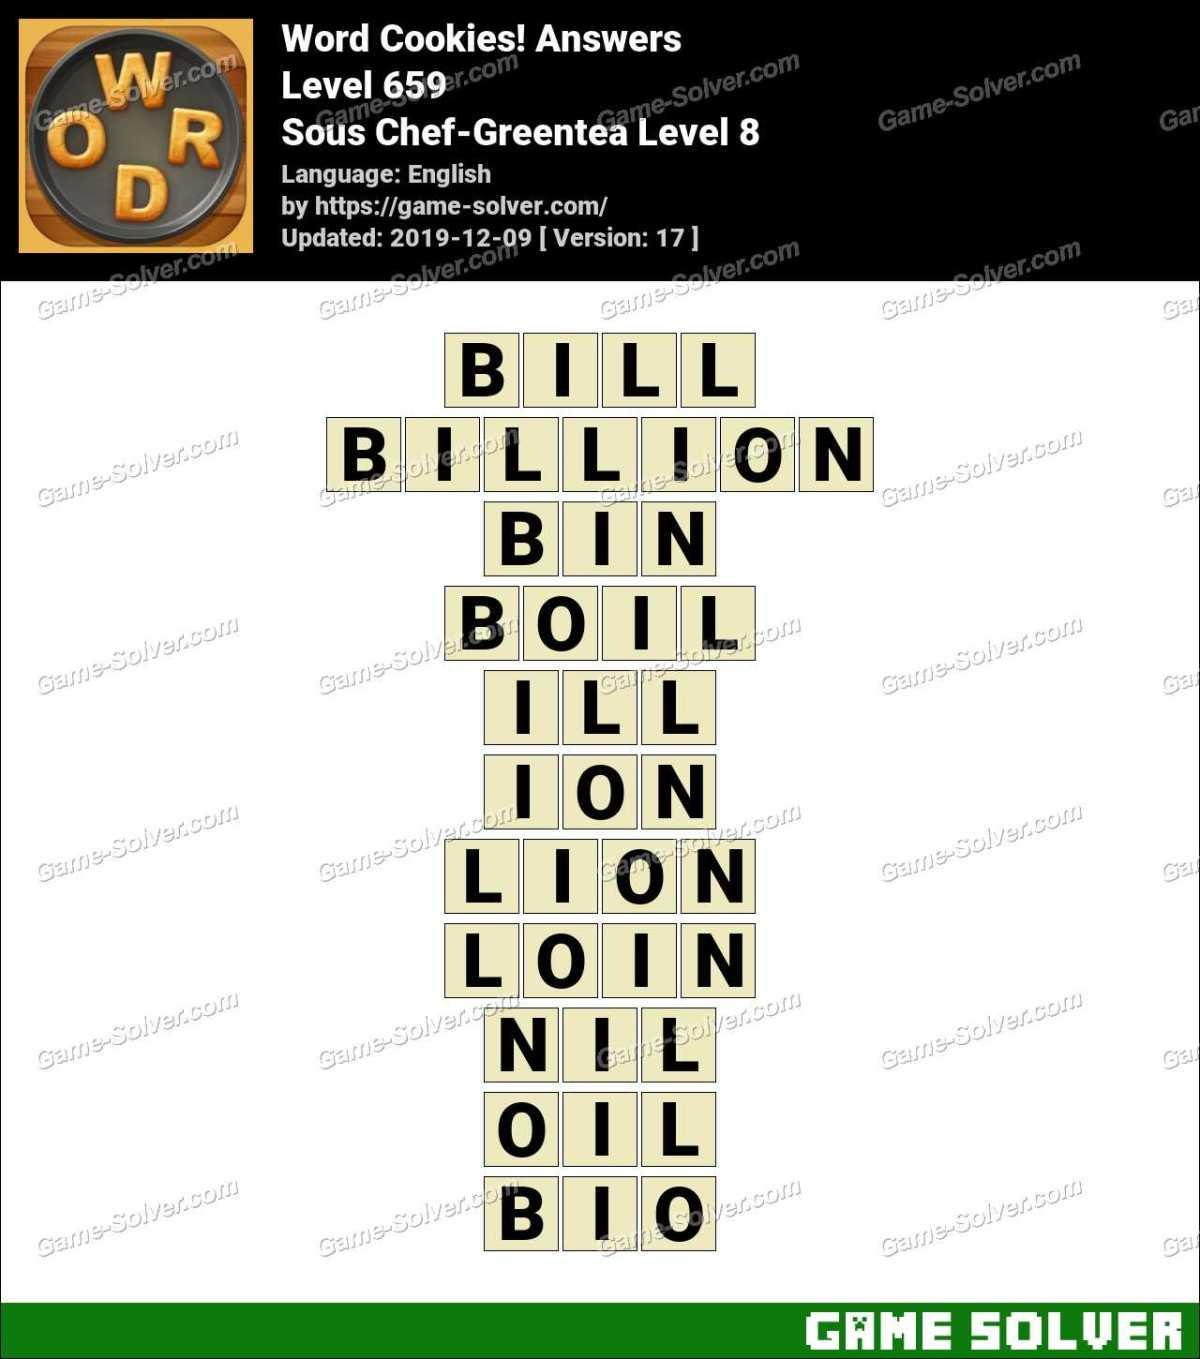 Word Cookies Sous Chef-Greentea Level 8 Answers